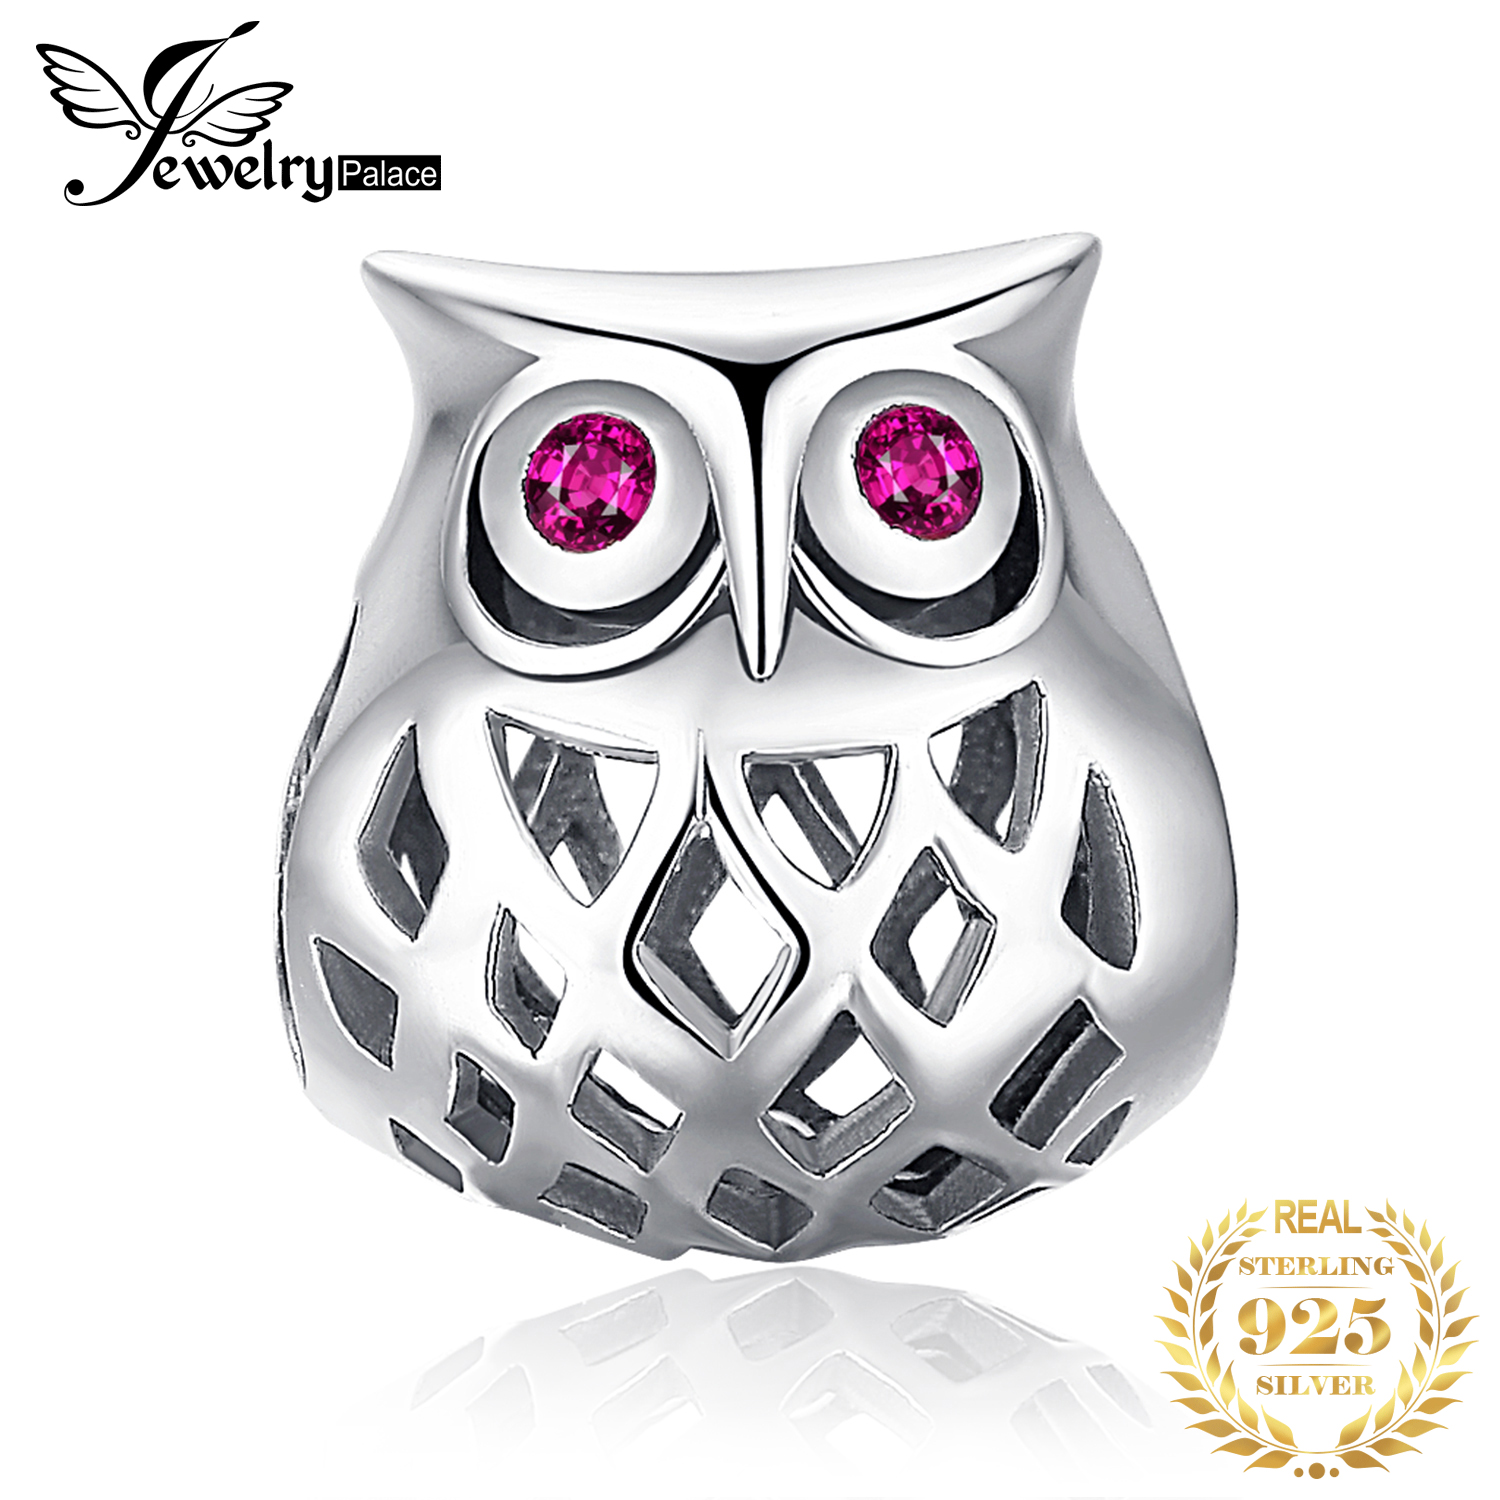 JewelryPalace 925 Sterling Silver Hollow Owl Beads Charms Silver 925 Original Fit Bracelet Silver 925 Original Jewelry Making